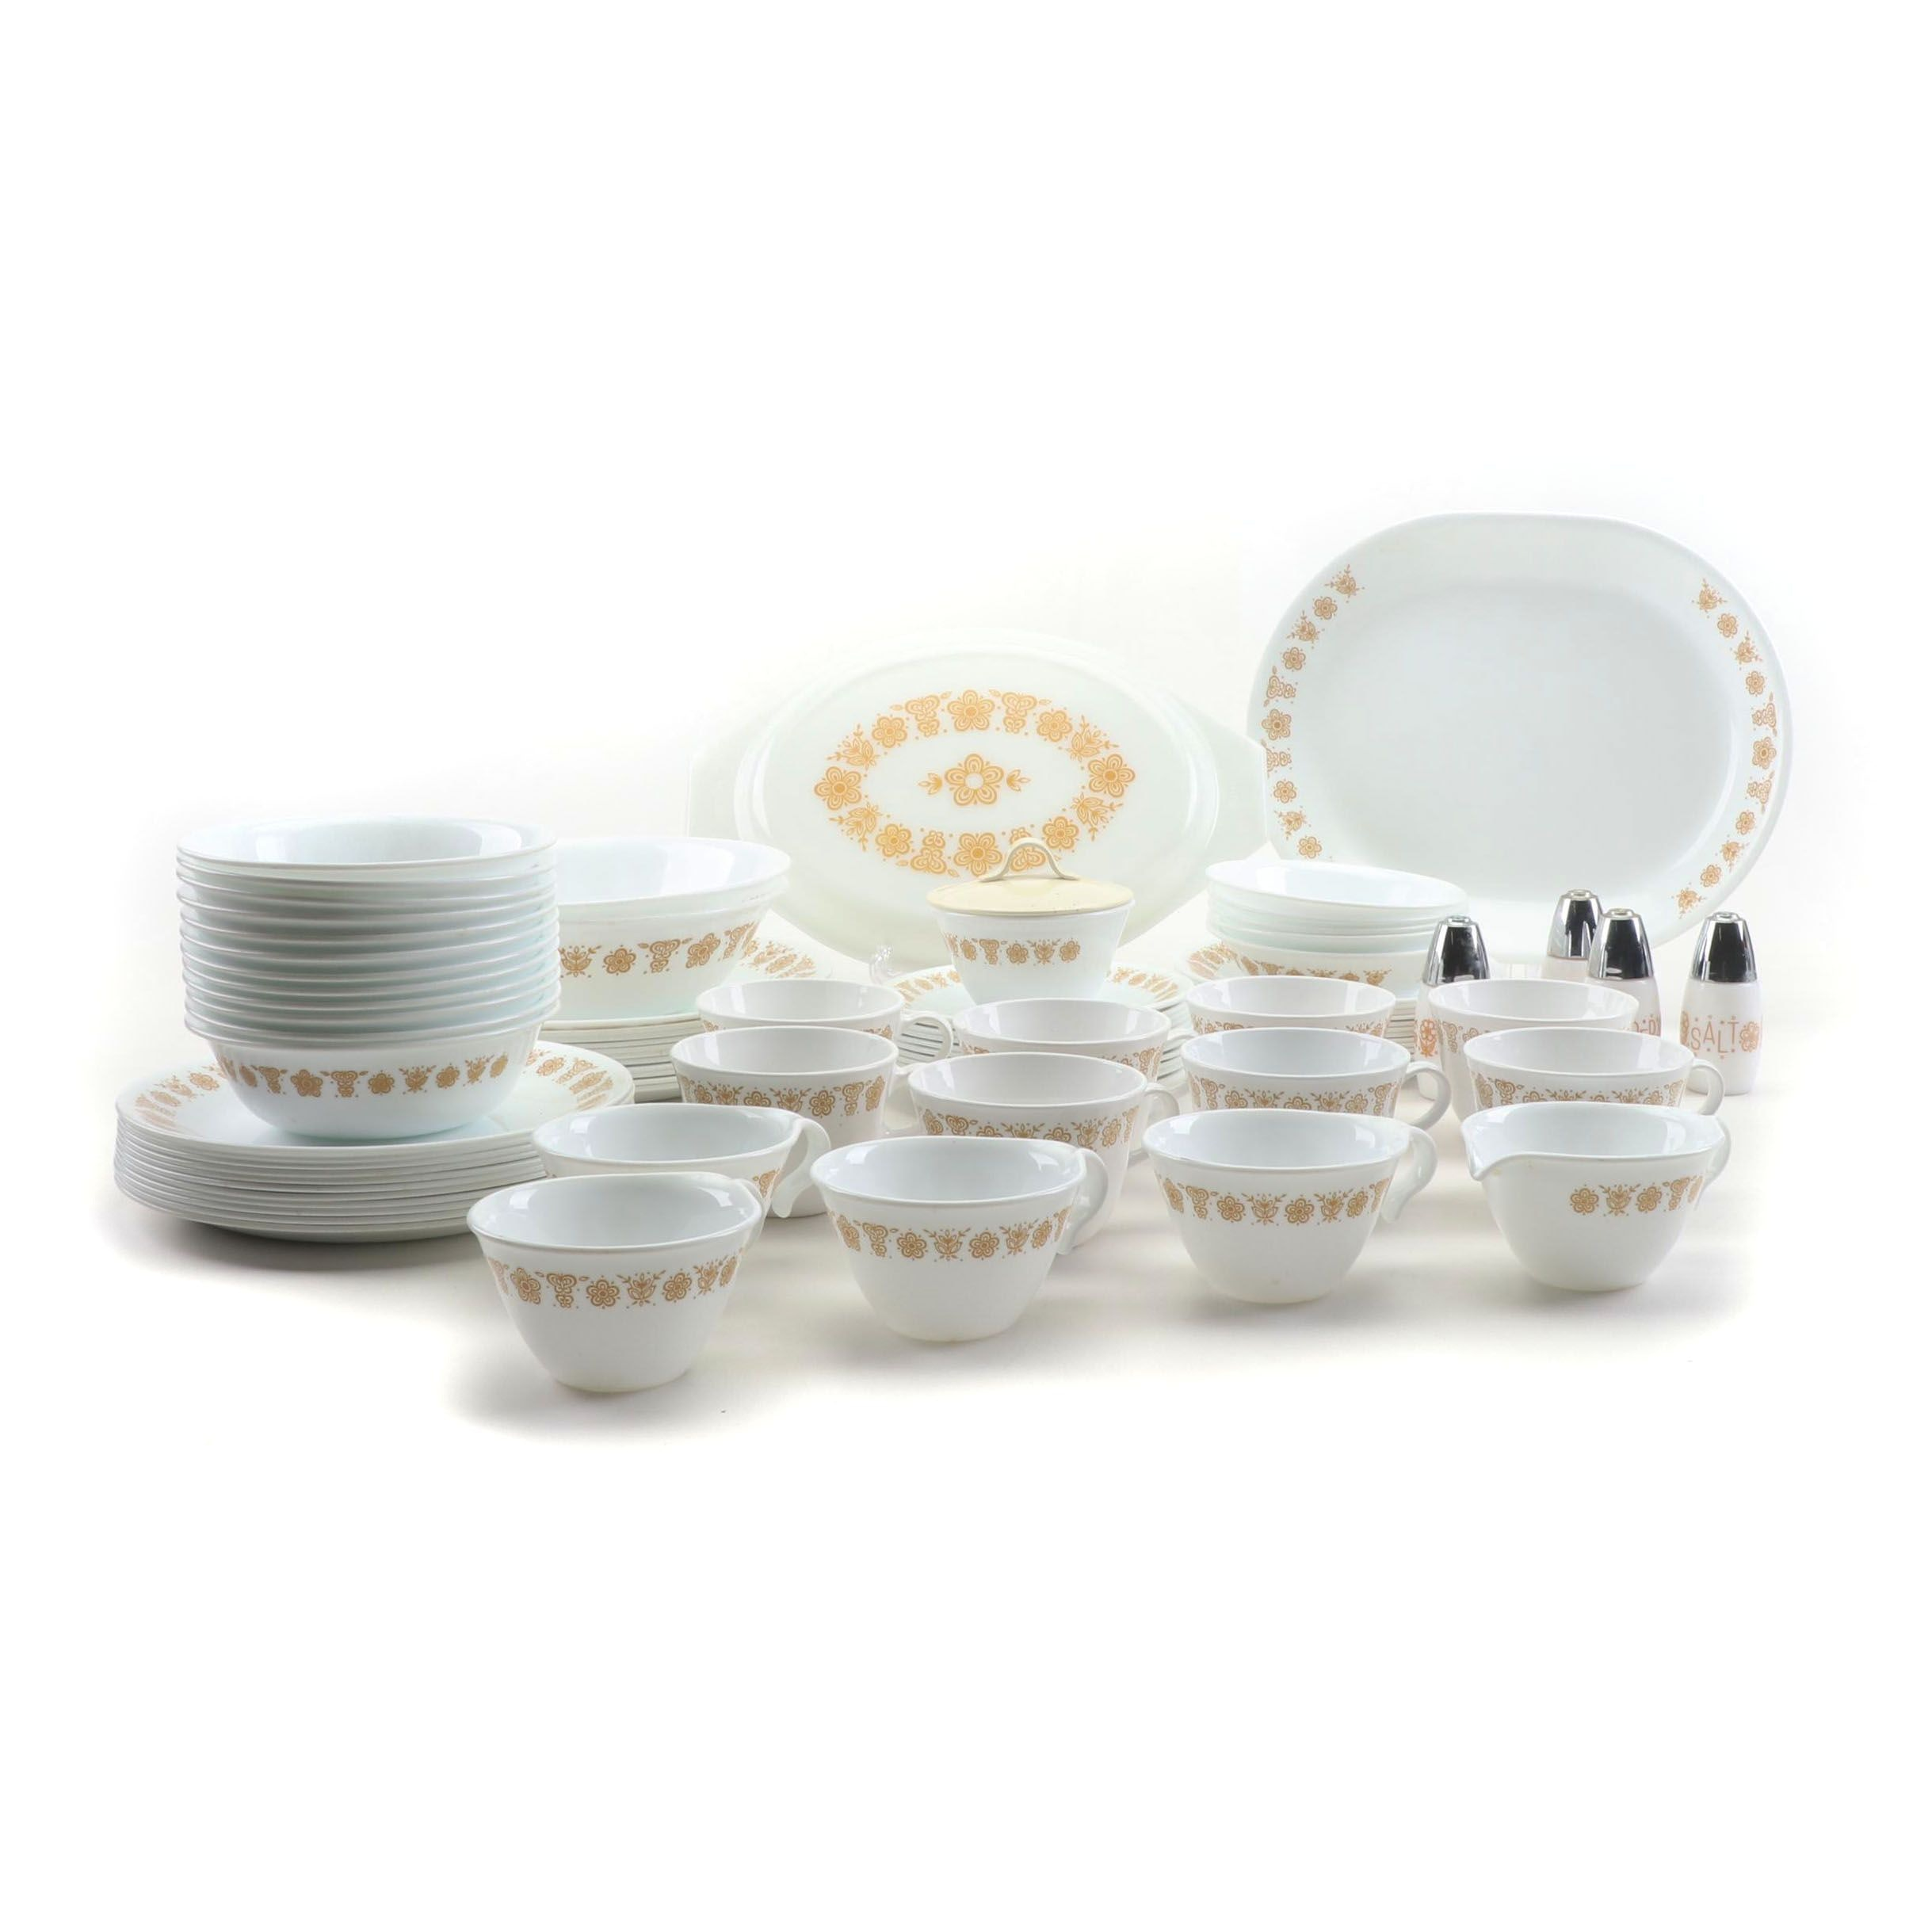 Corning Corette Livingware China Dinnerware